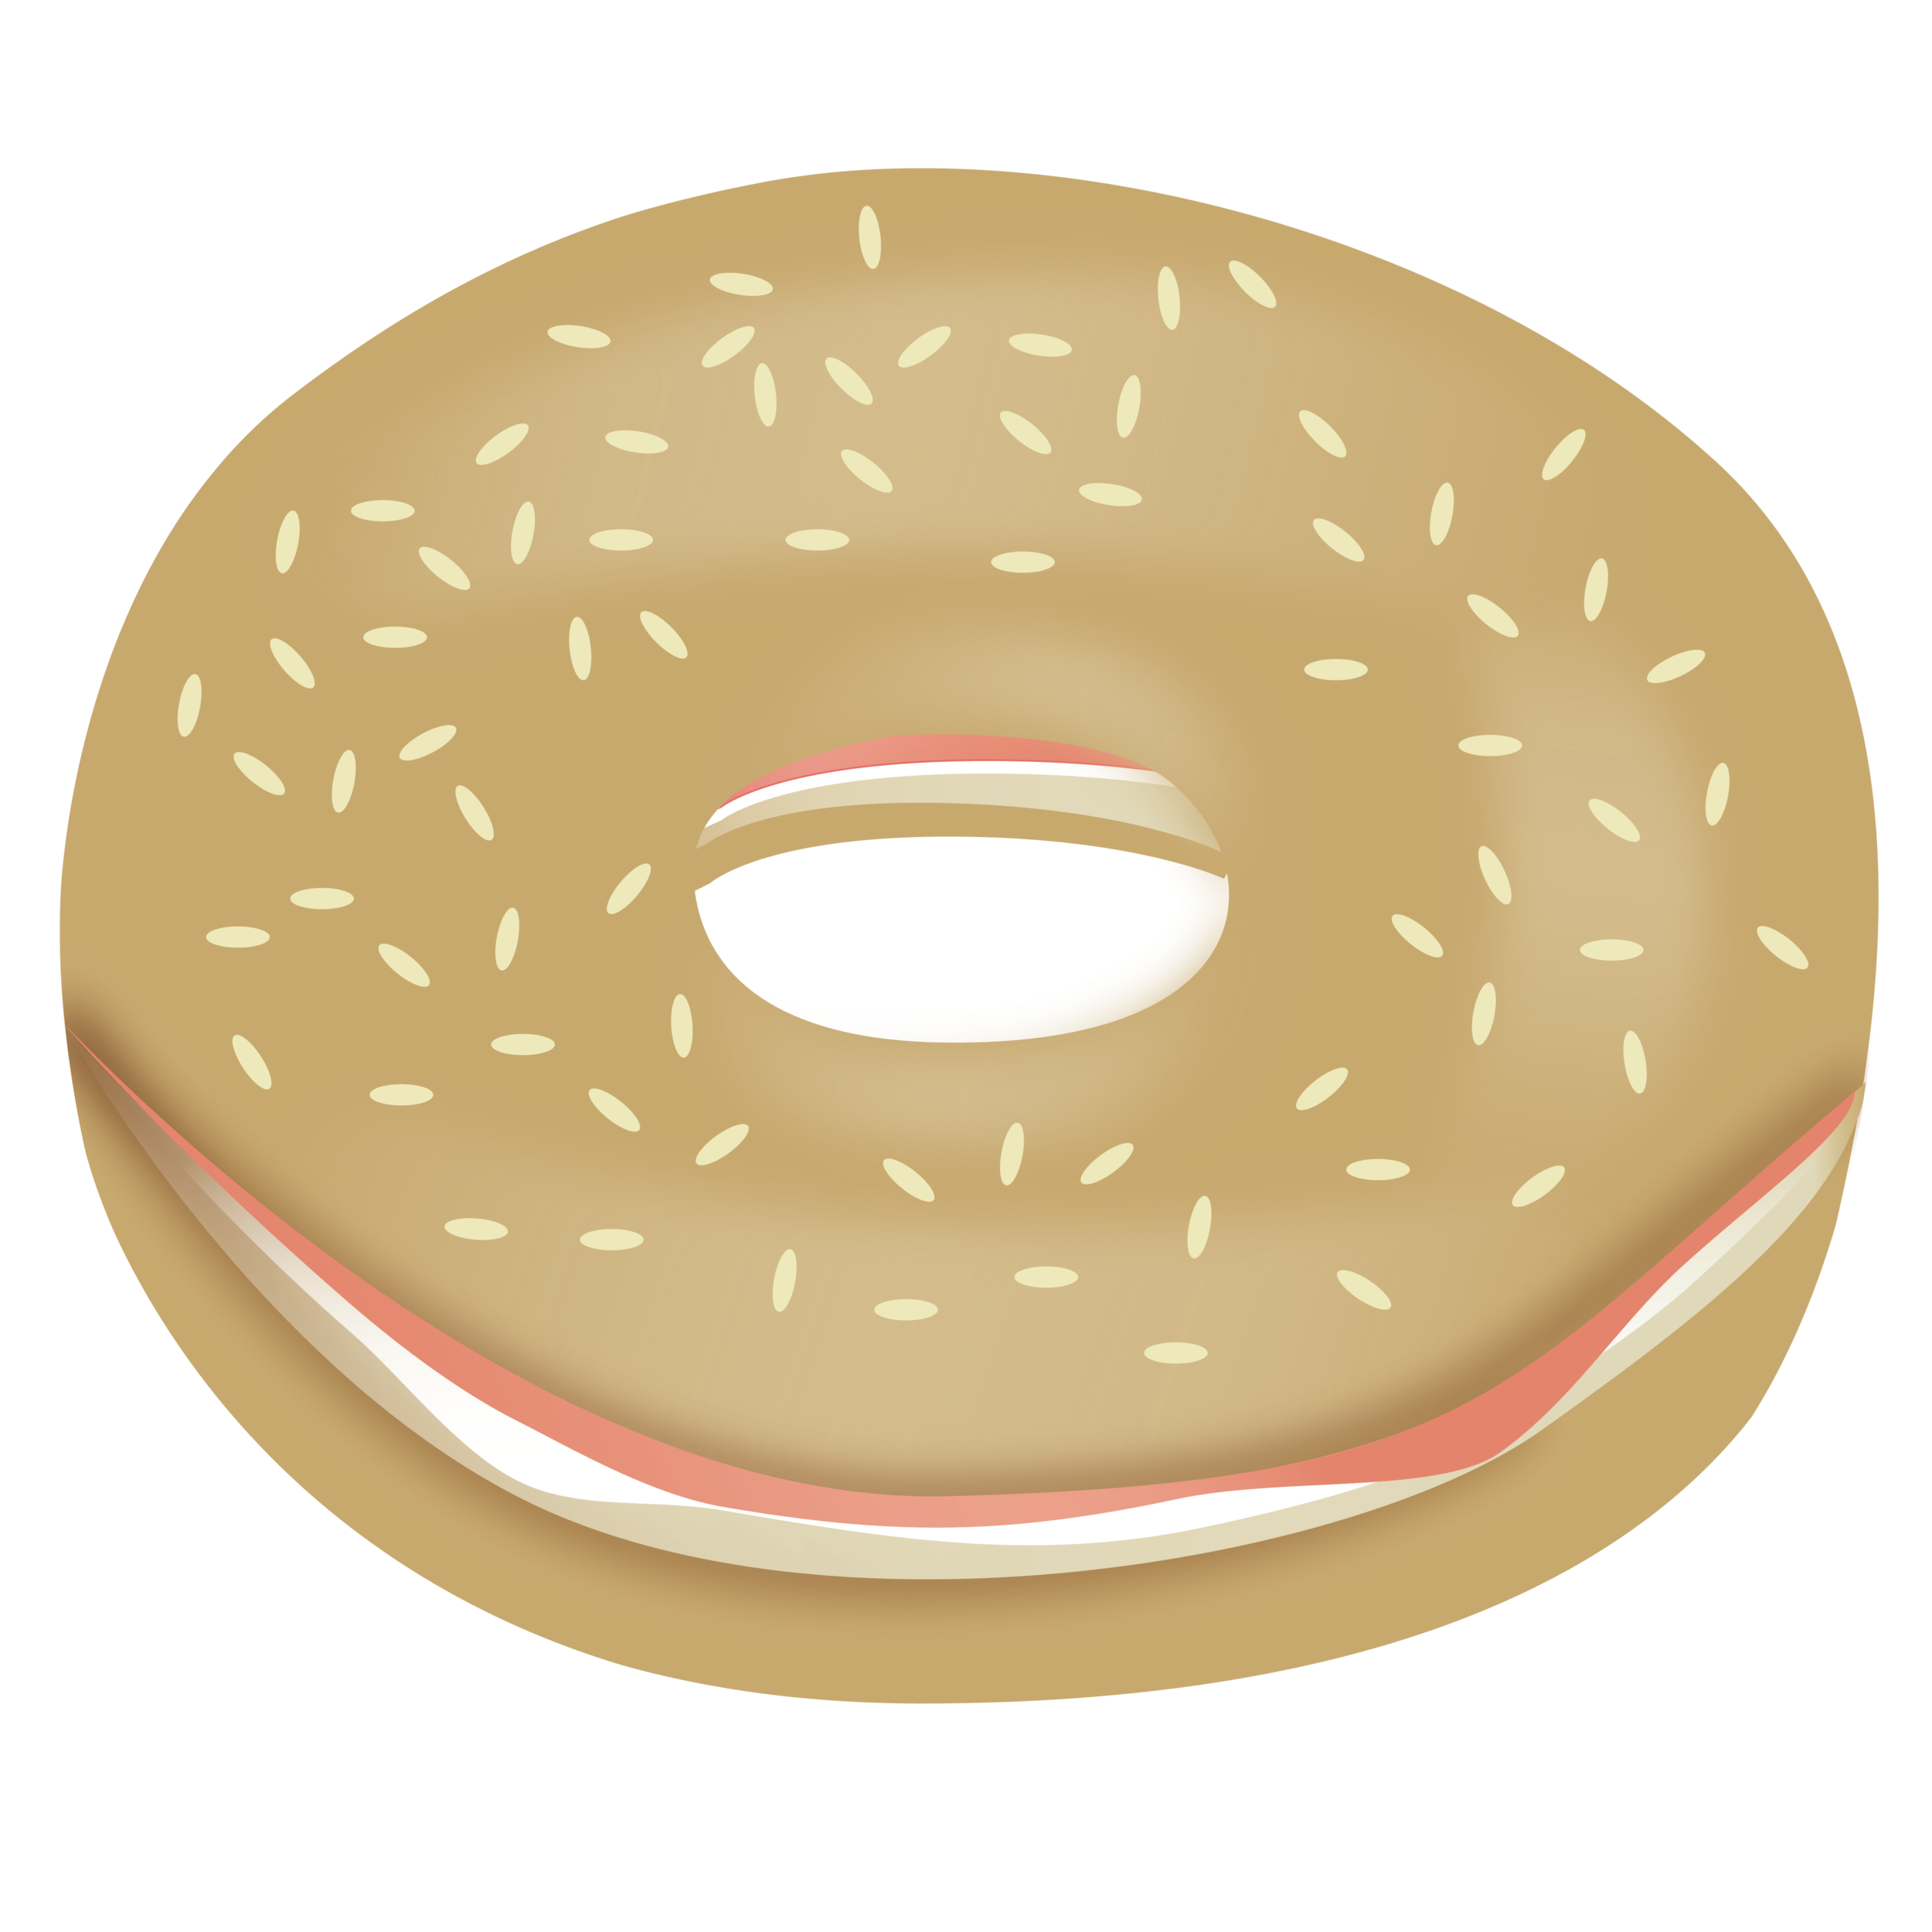 Designing a bagel emoji. Tired clipart fast